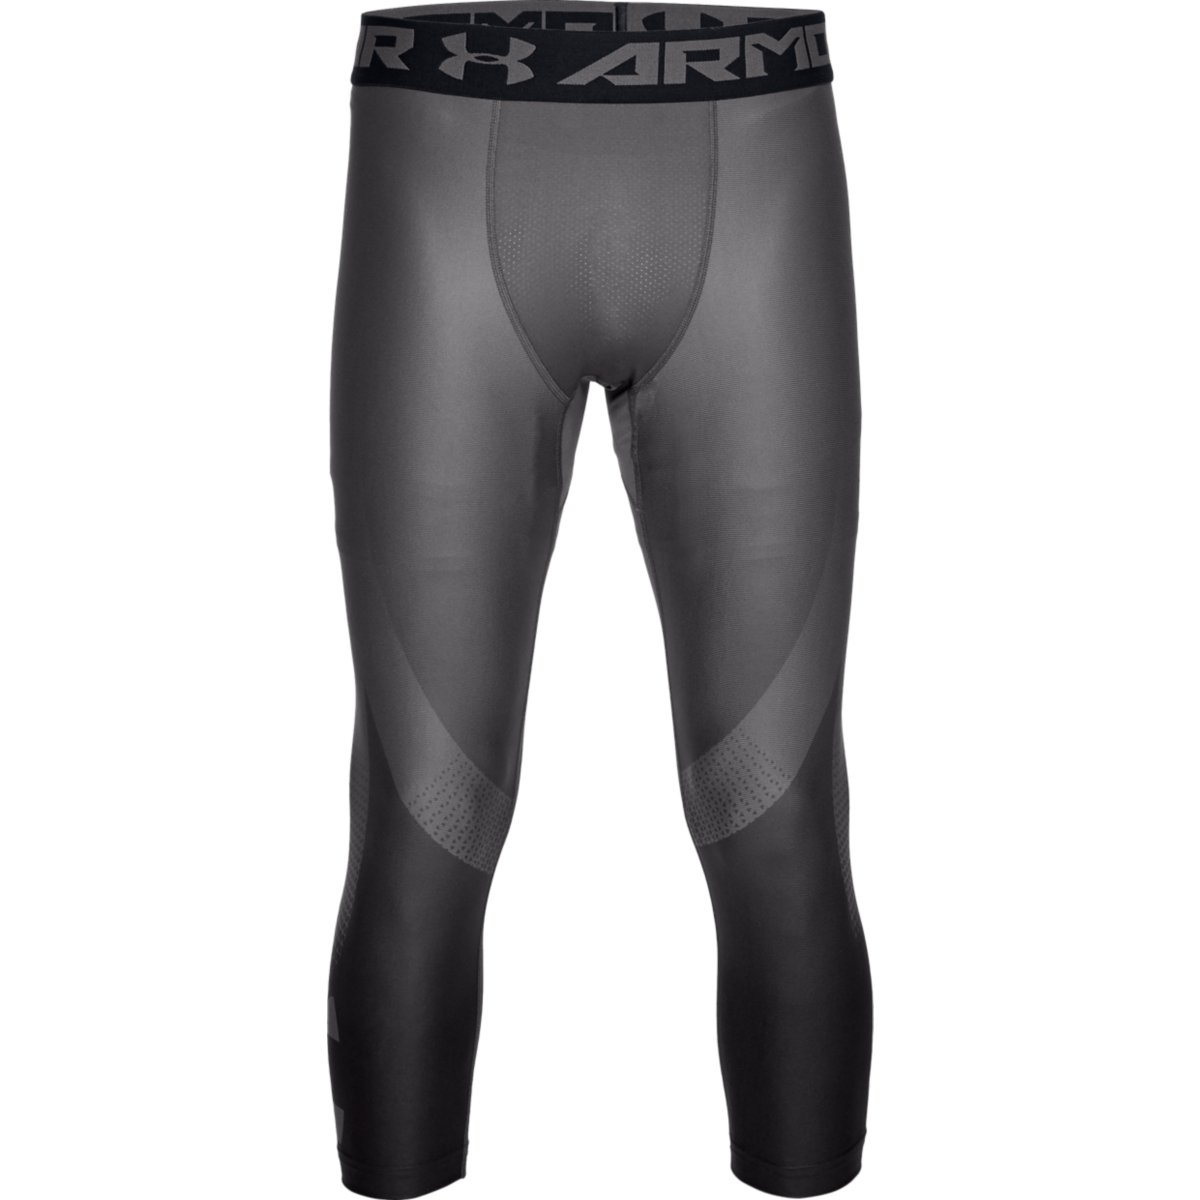 Under Armour HeatGear Armour 2.0 3/4 Novelty Legging | item_misc